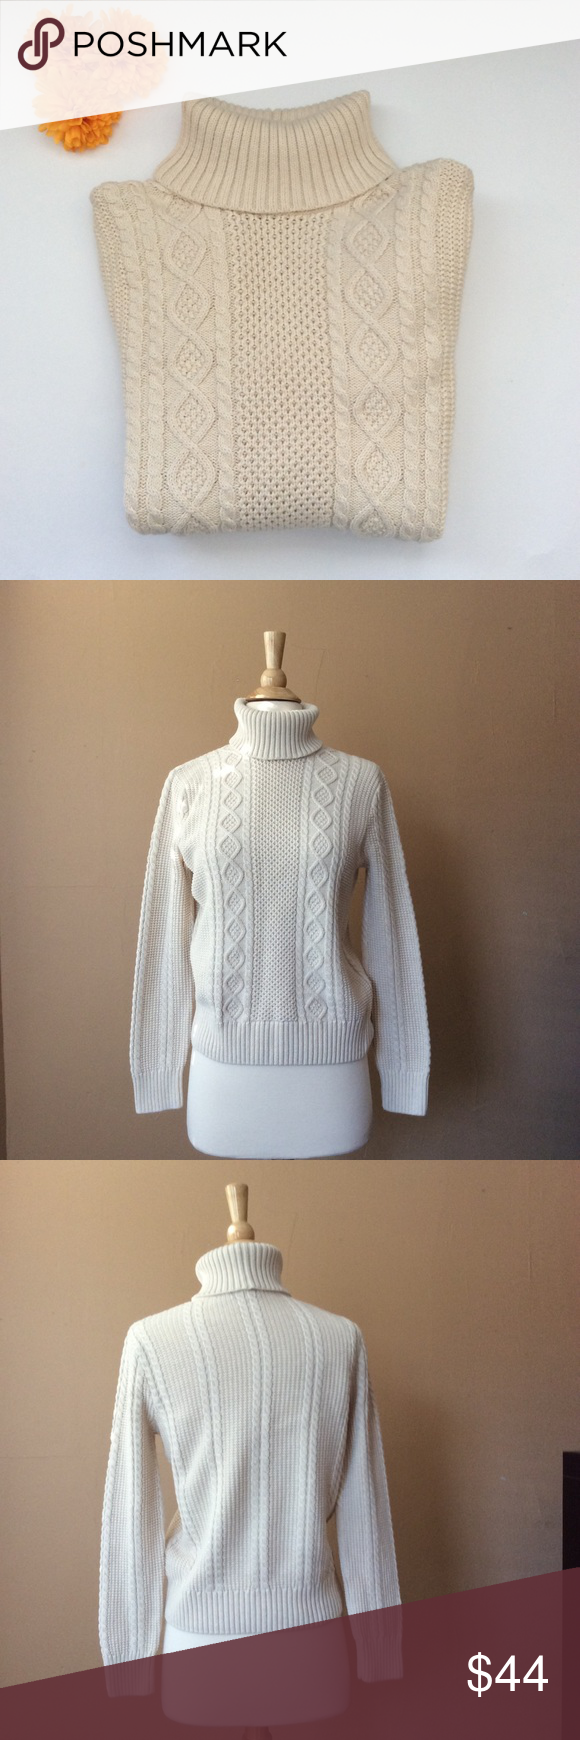 Turtleneck fisherman sweater 100% cotton | Cable knitting, Cable ...